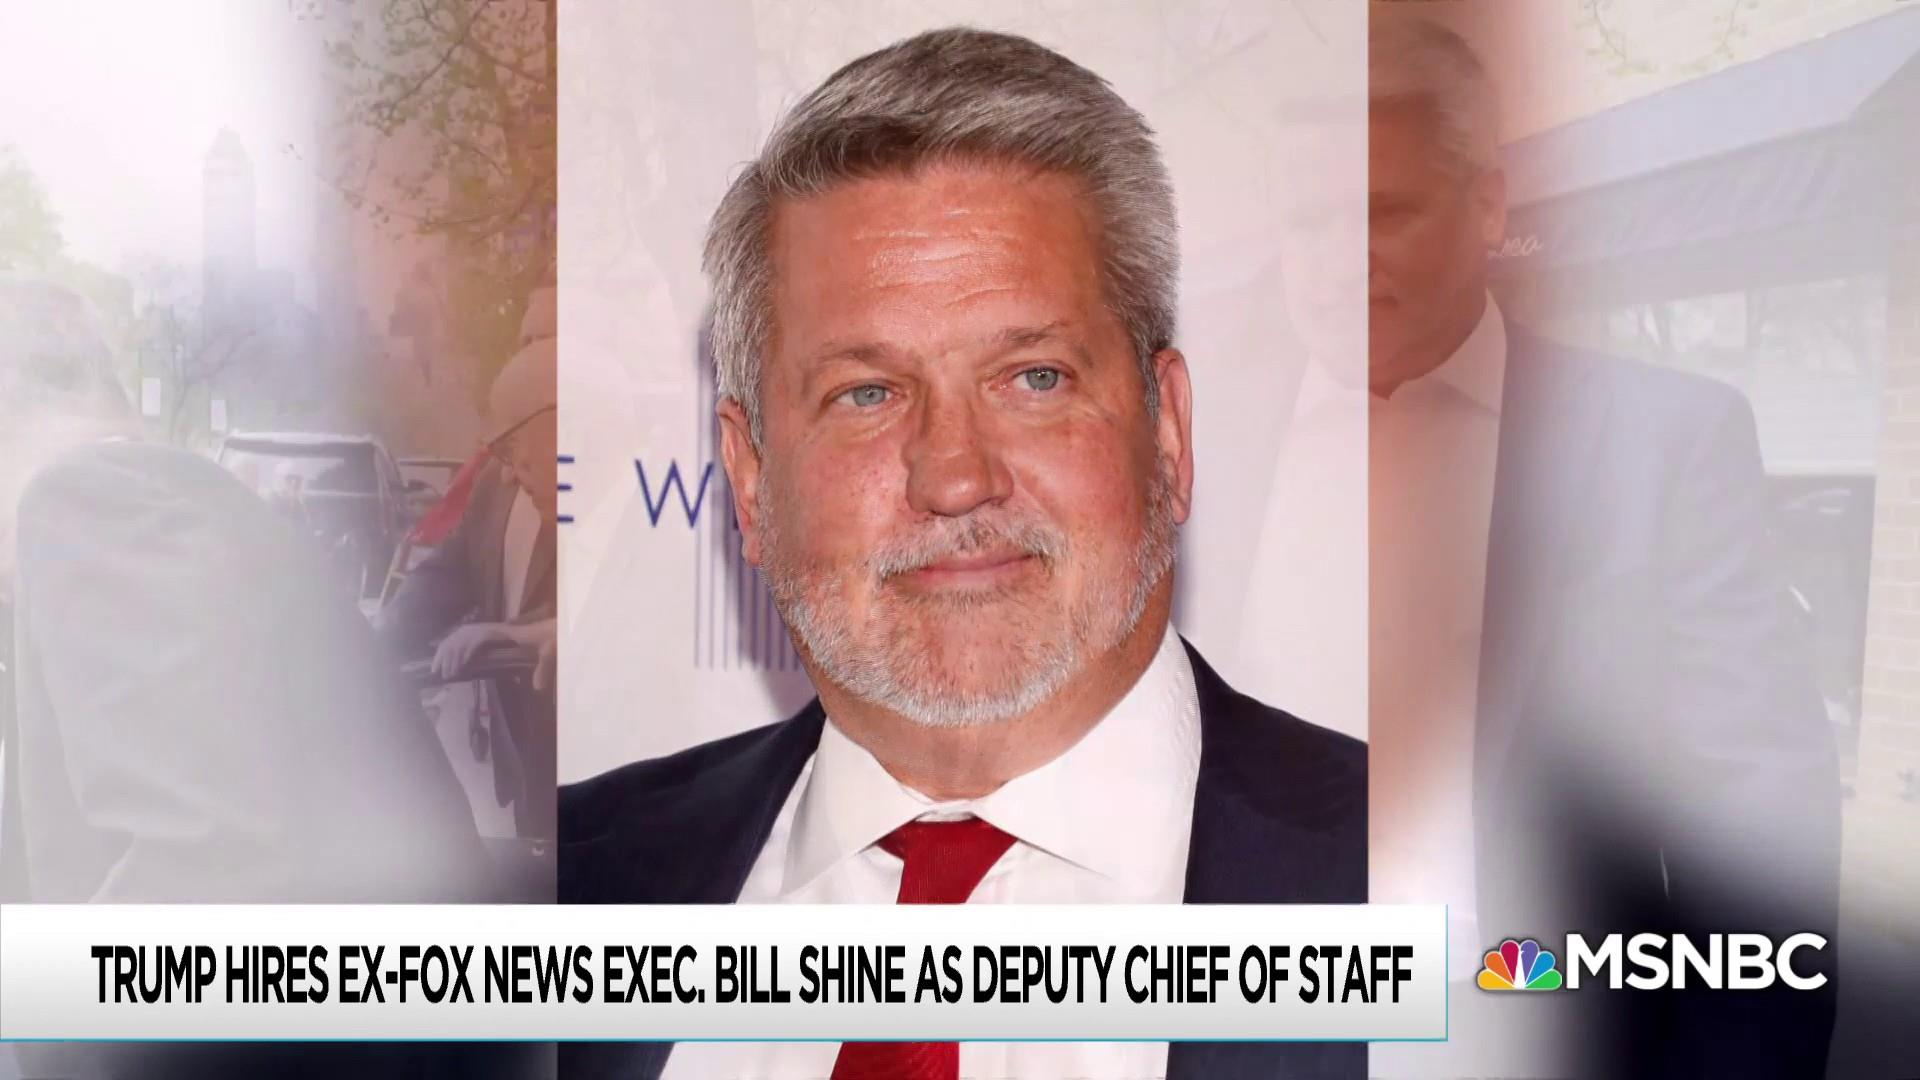 Fired from Fox News over sex harassment cover-up, hired by Trump